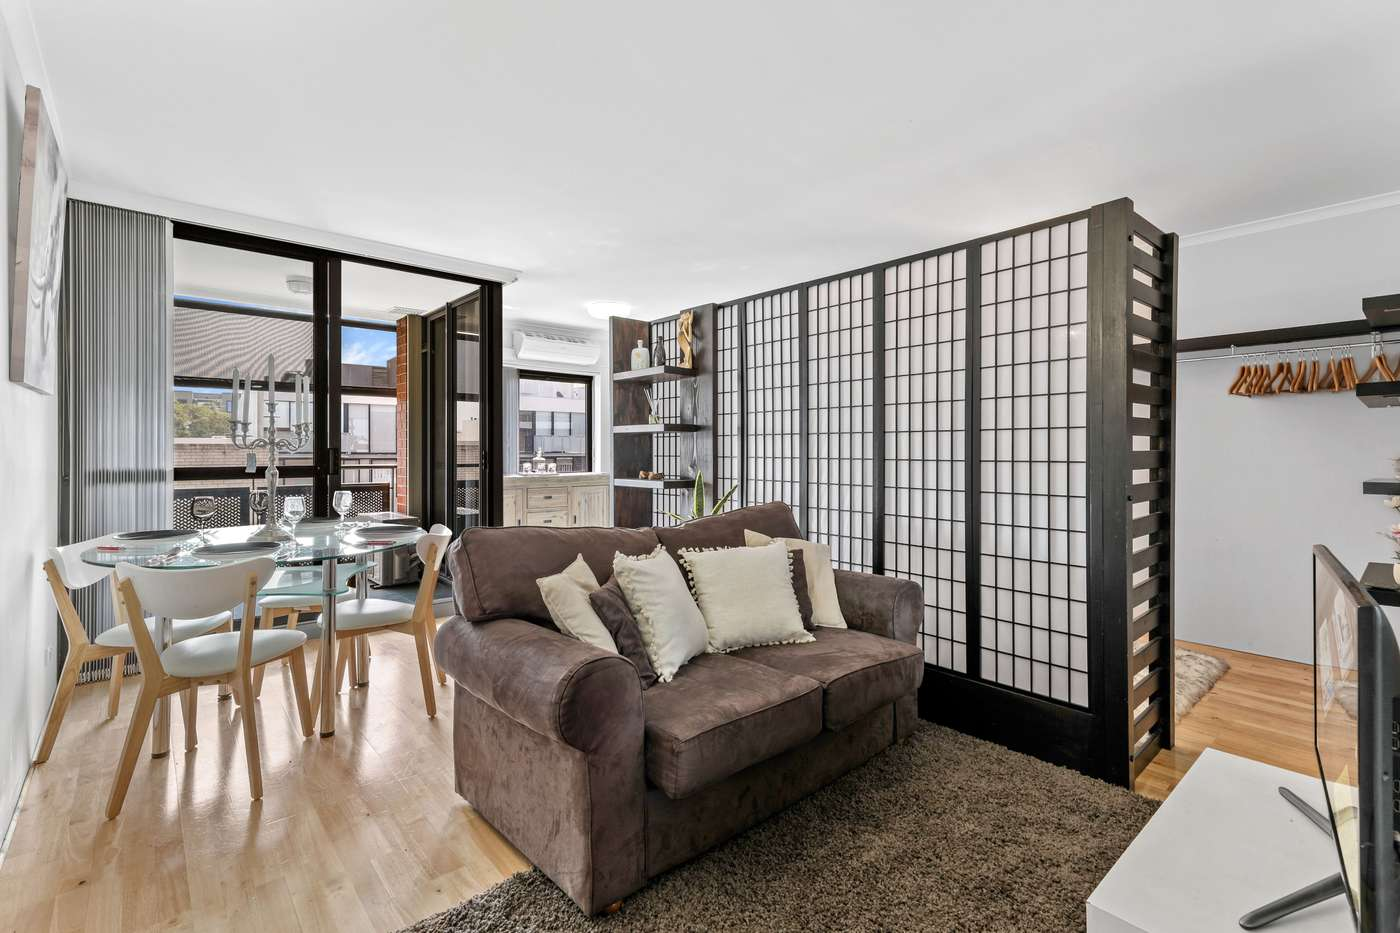 Main view of Homely apartment listing, 21/551 Elizabeth Street, Surry Hills, NSW 2010